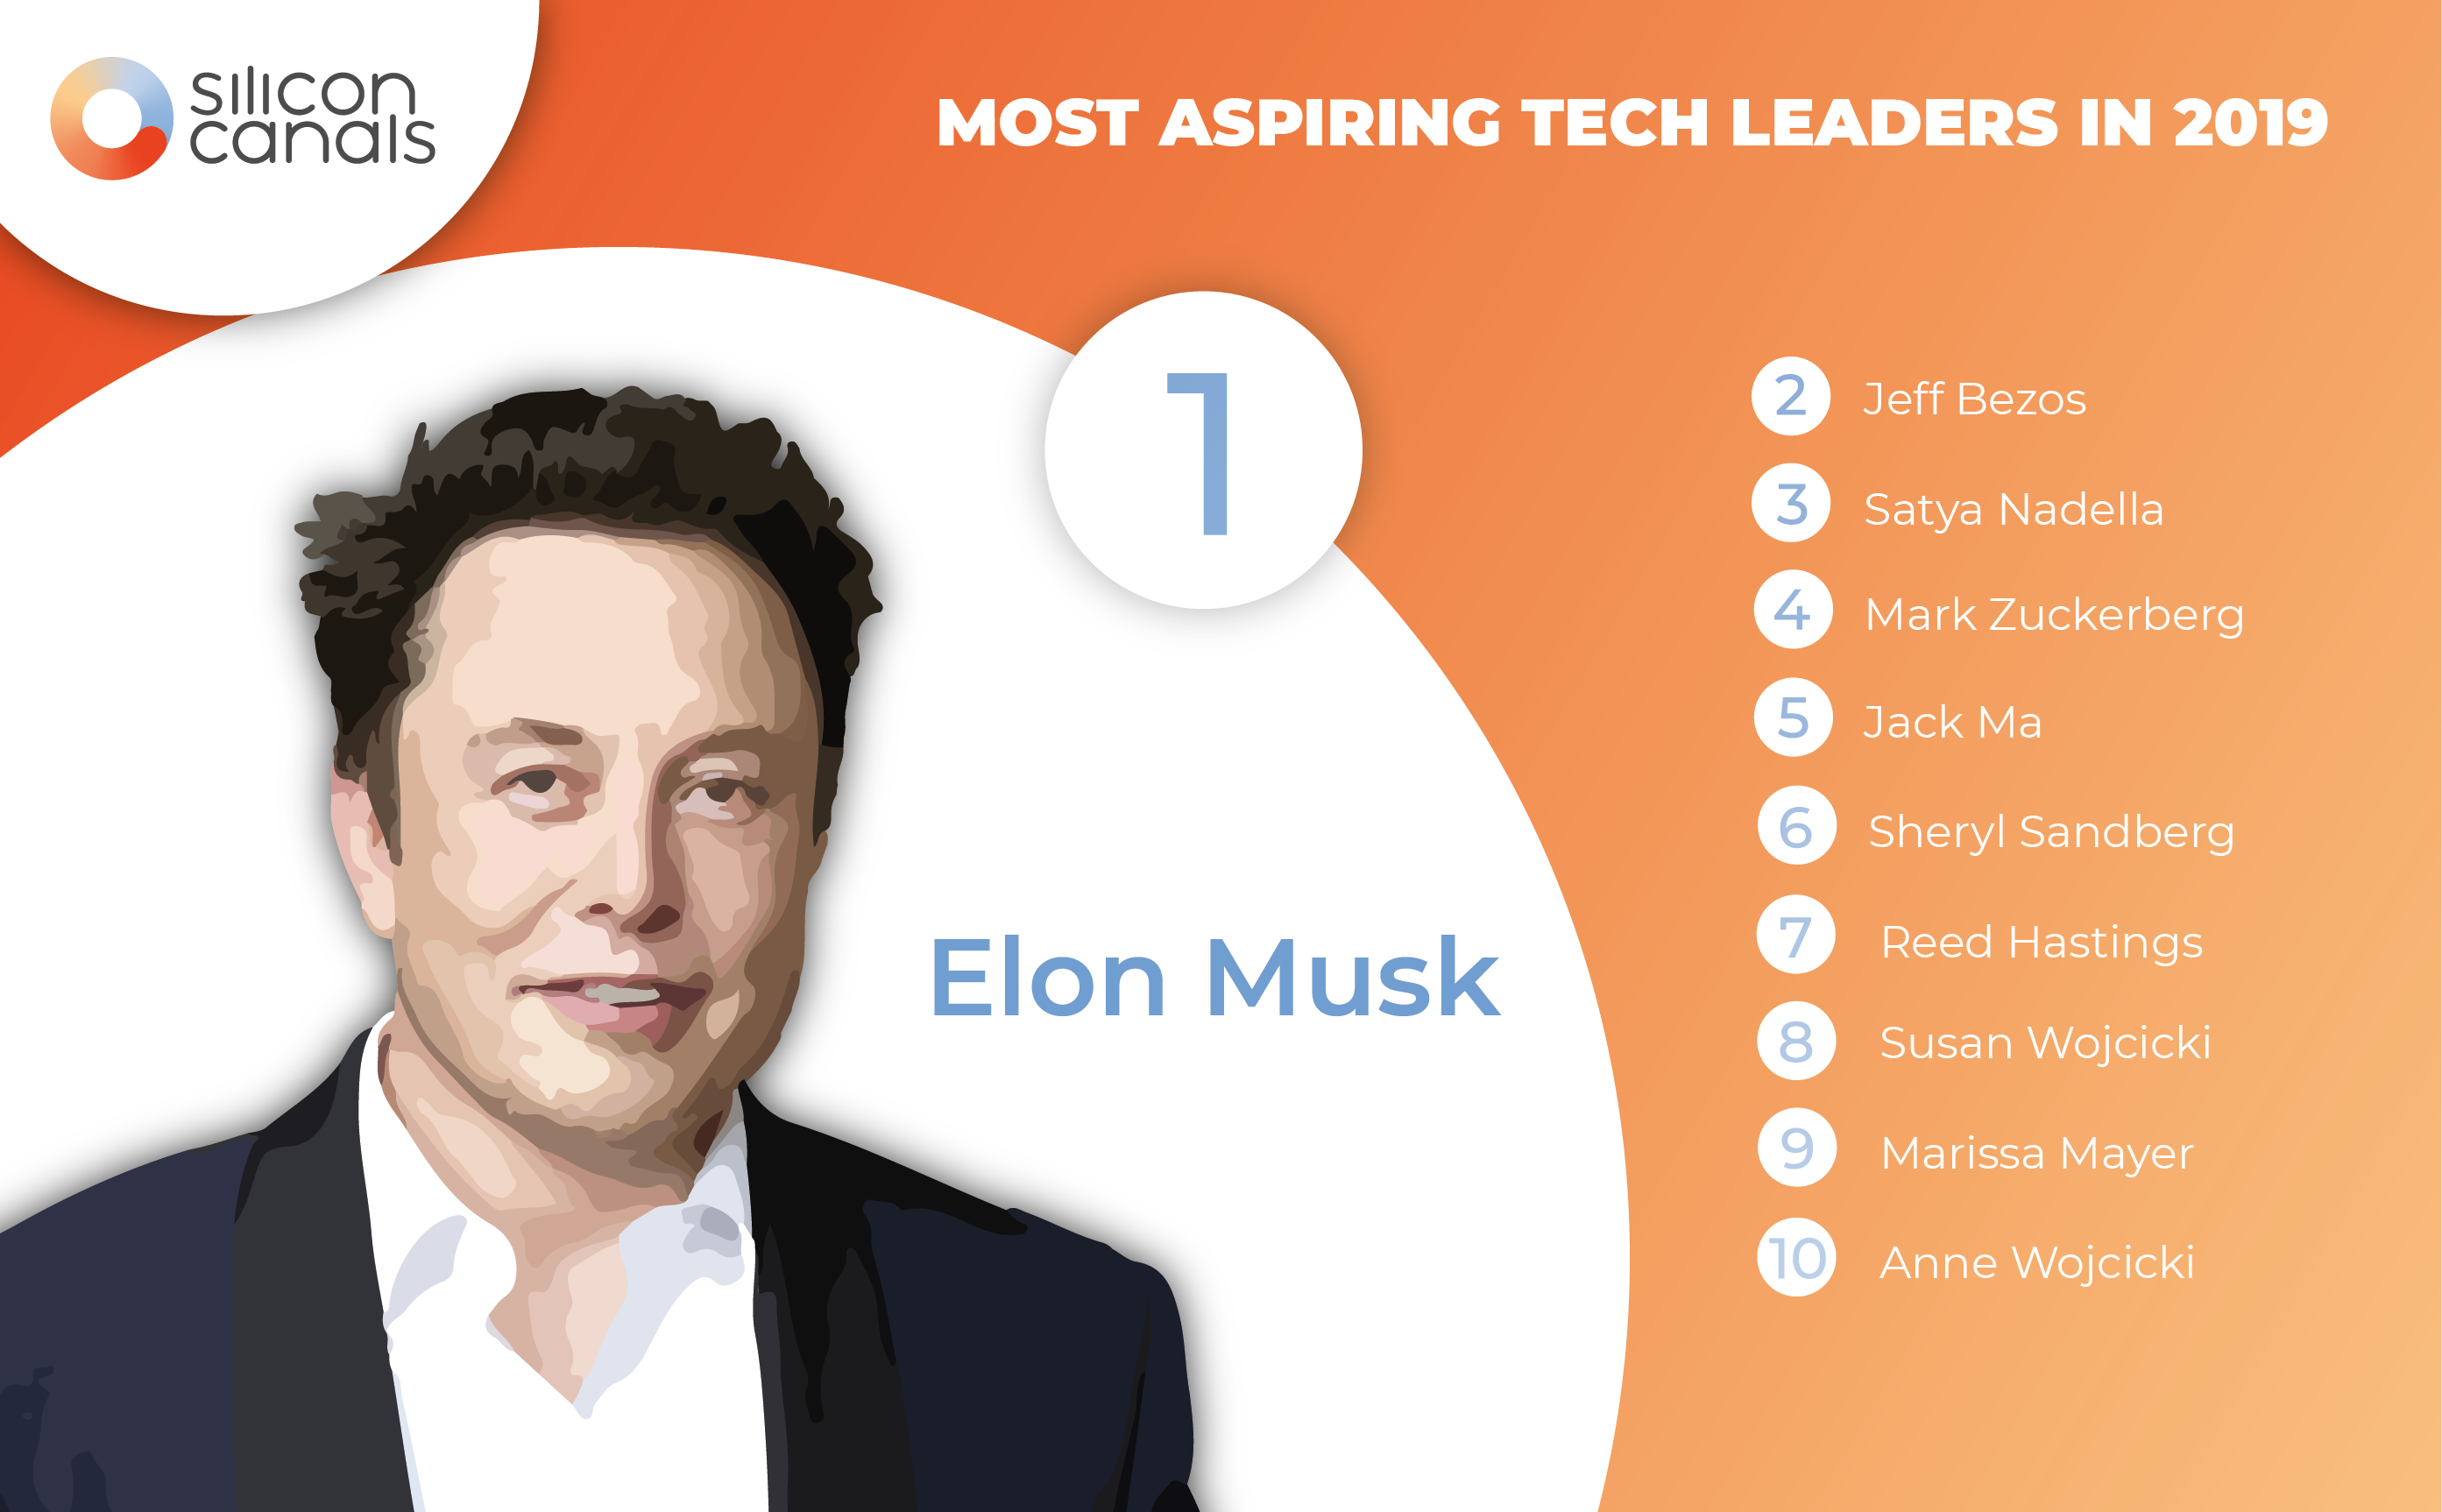 Here's the list of most inspiring tech leaders in 2019